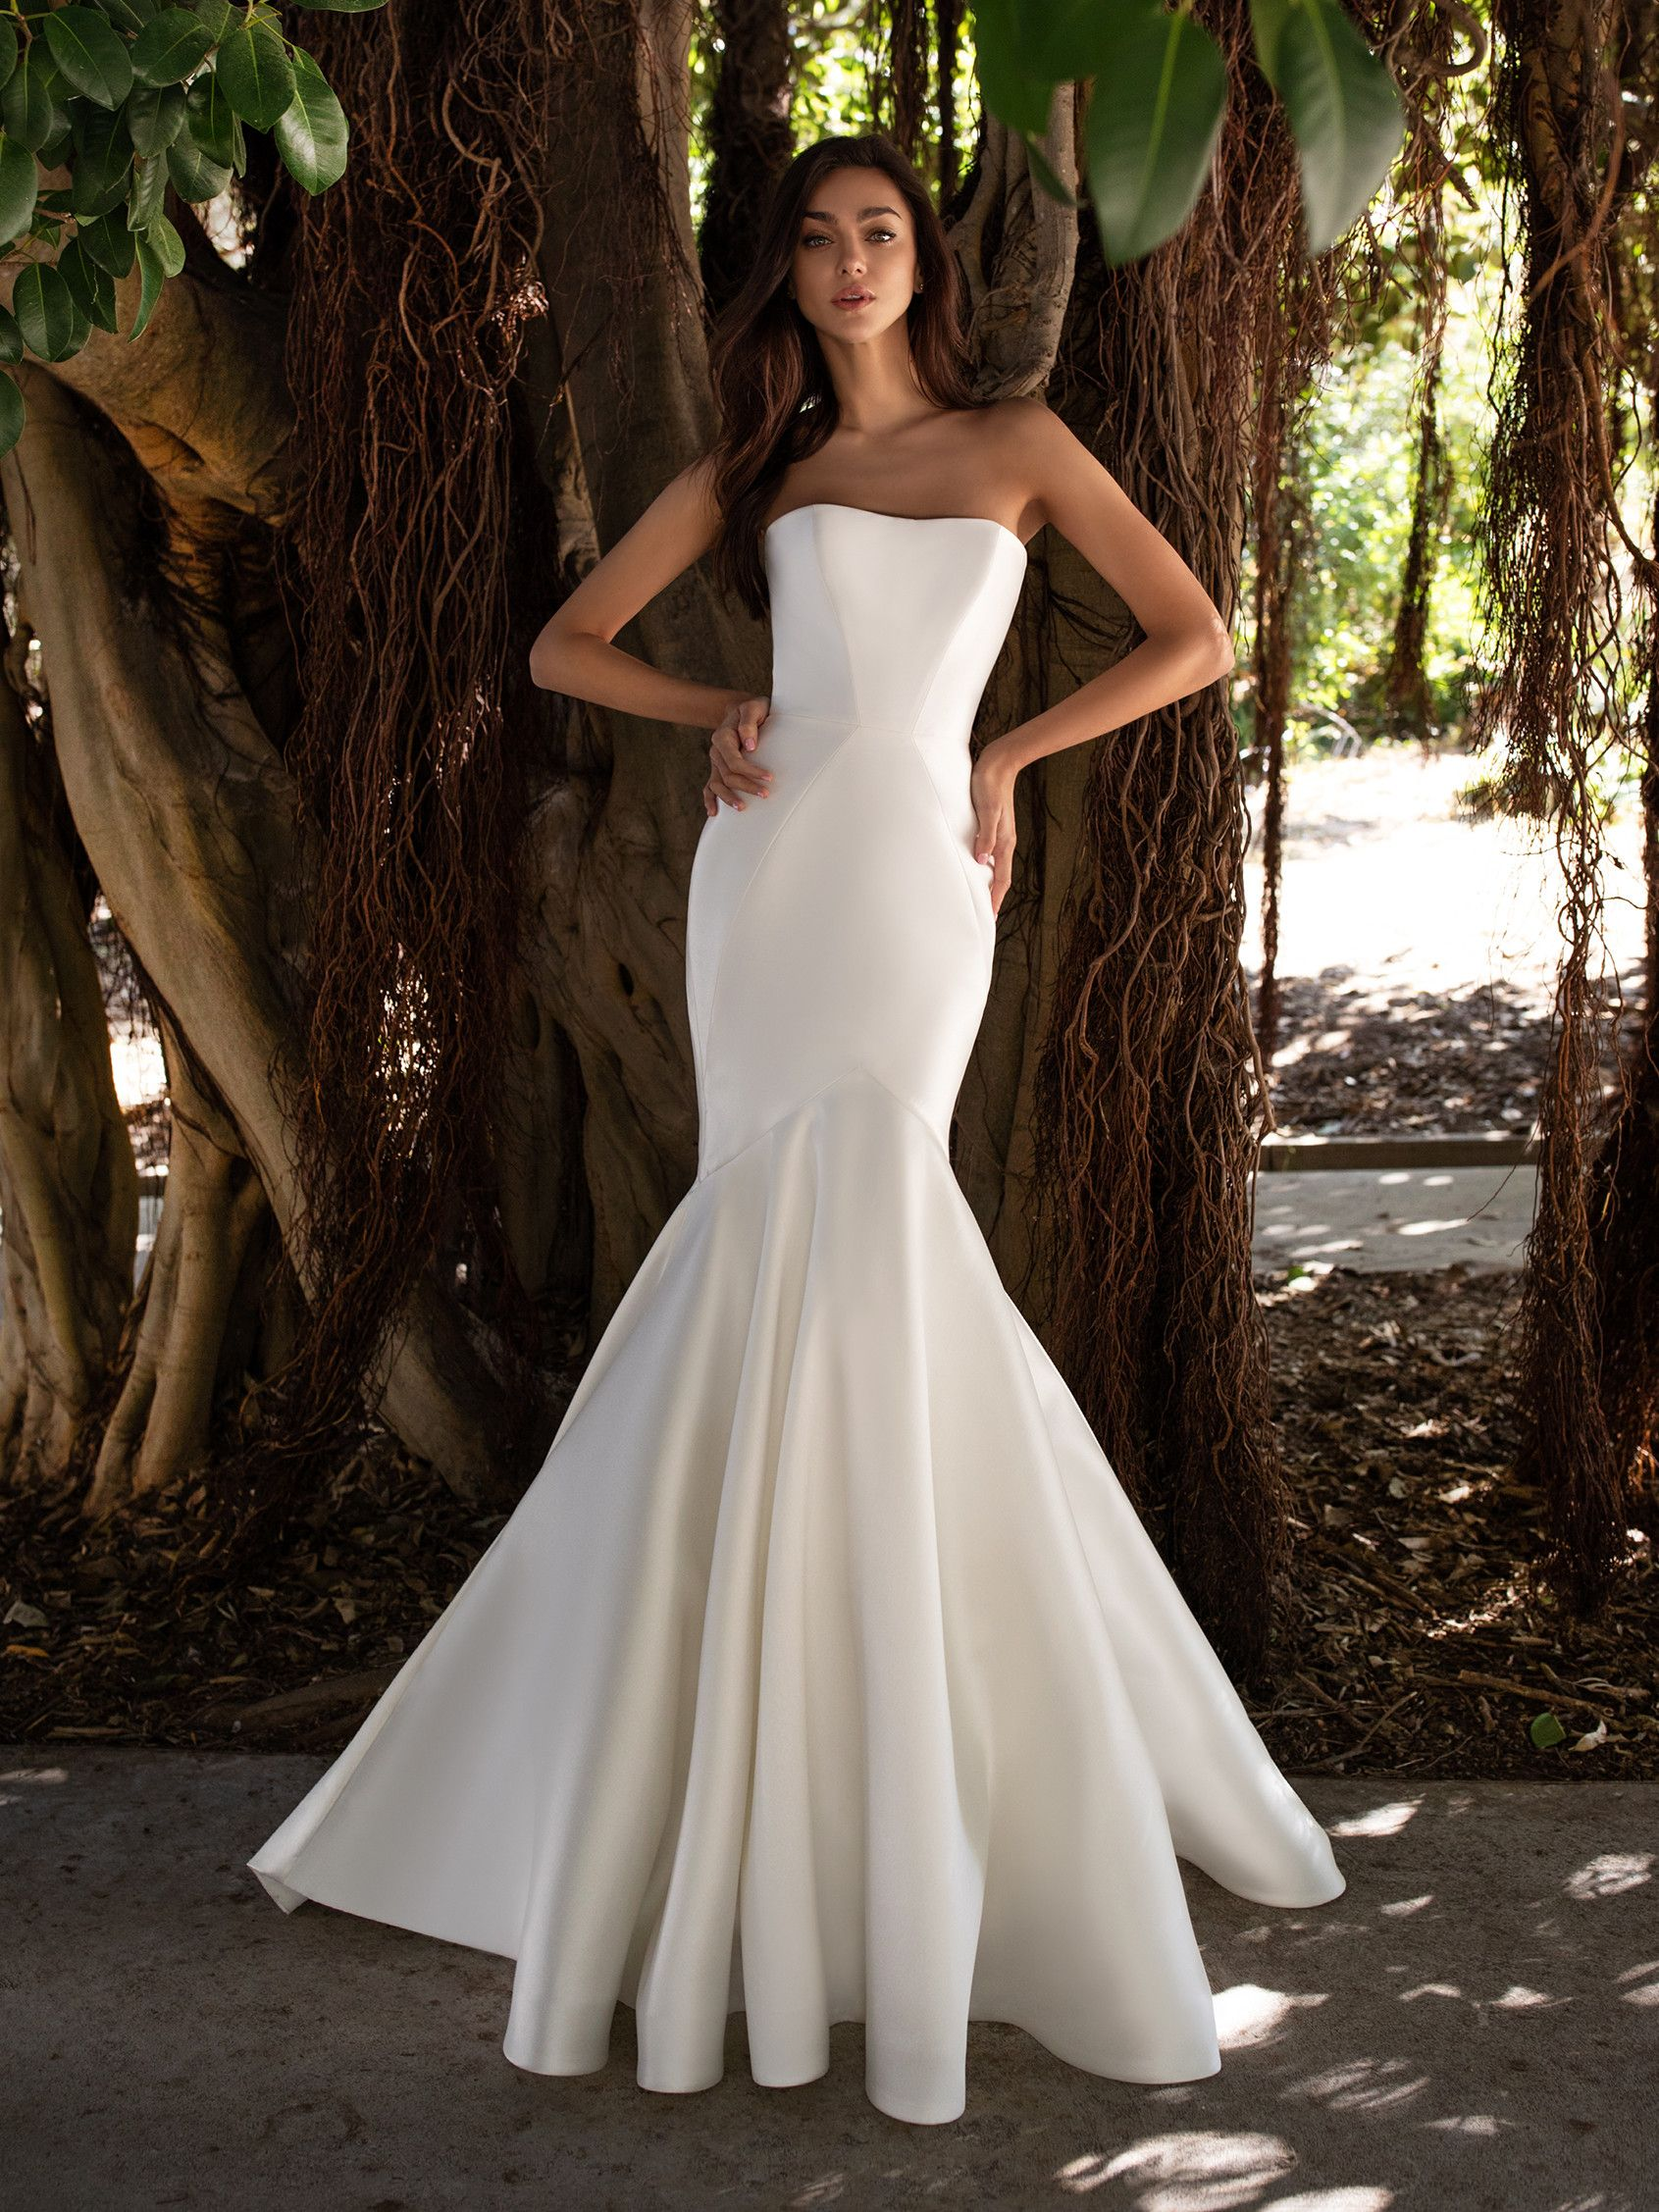 Strapless Mermaid Wedding Dress With Open Back Pronovias Satin Mermaid Wedding Dress Strapless Wedding Dress Mermaid Wedding Dresses Strapless [ 2255 x 1691 Pixel ]